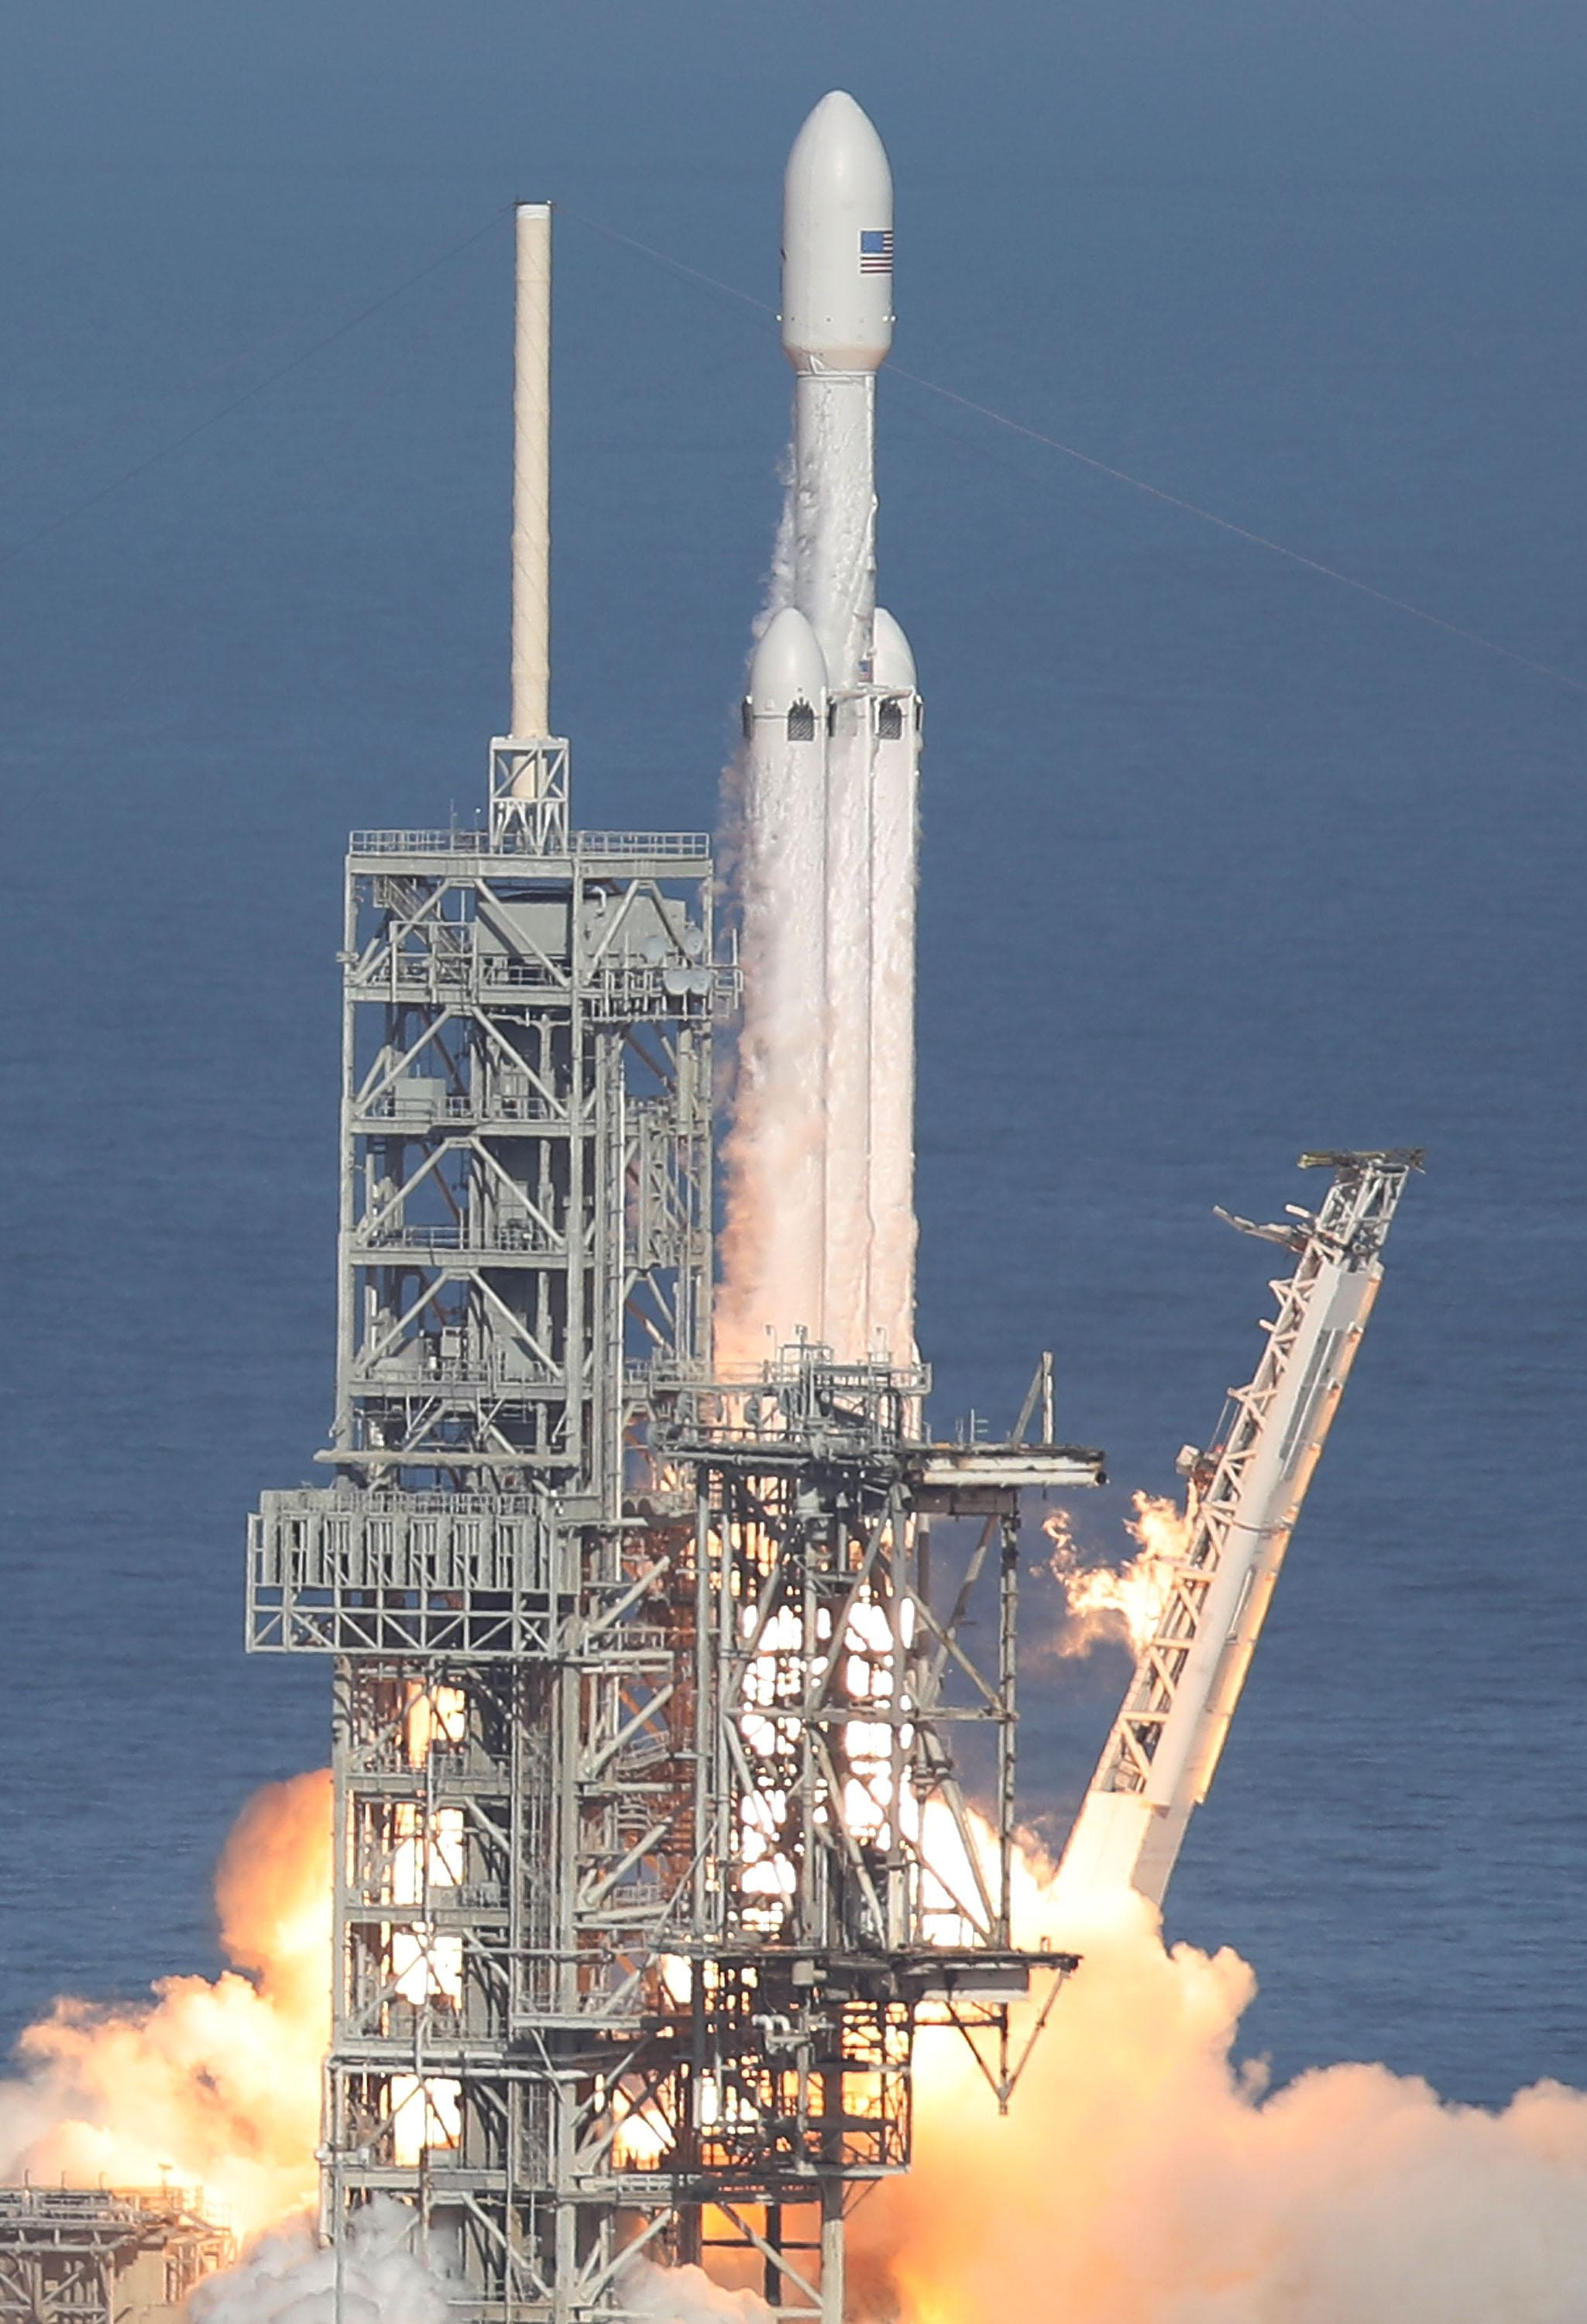 spacex heavy lift launch - HD 820×1200